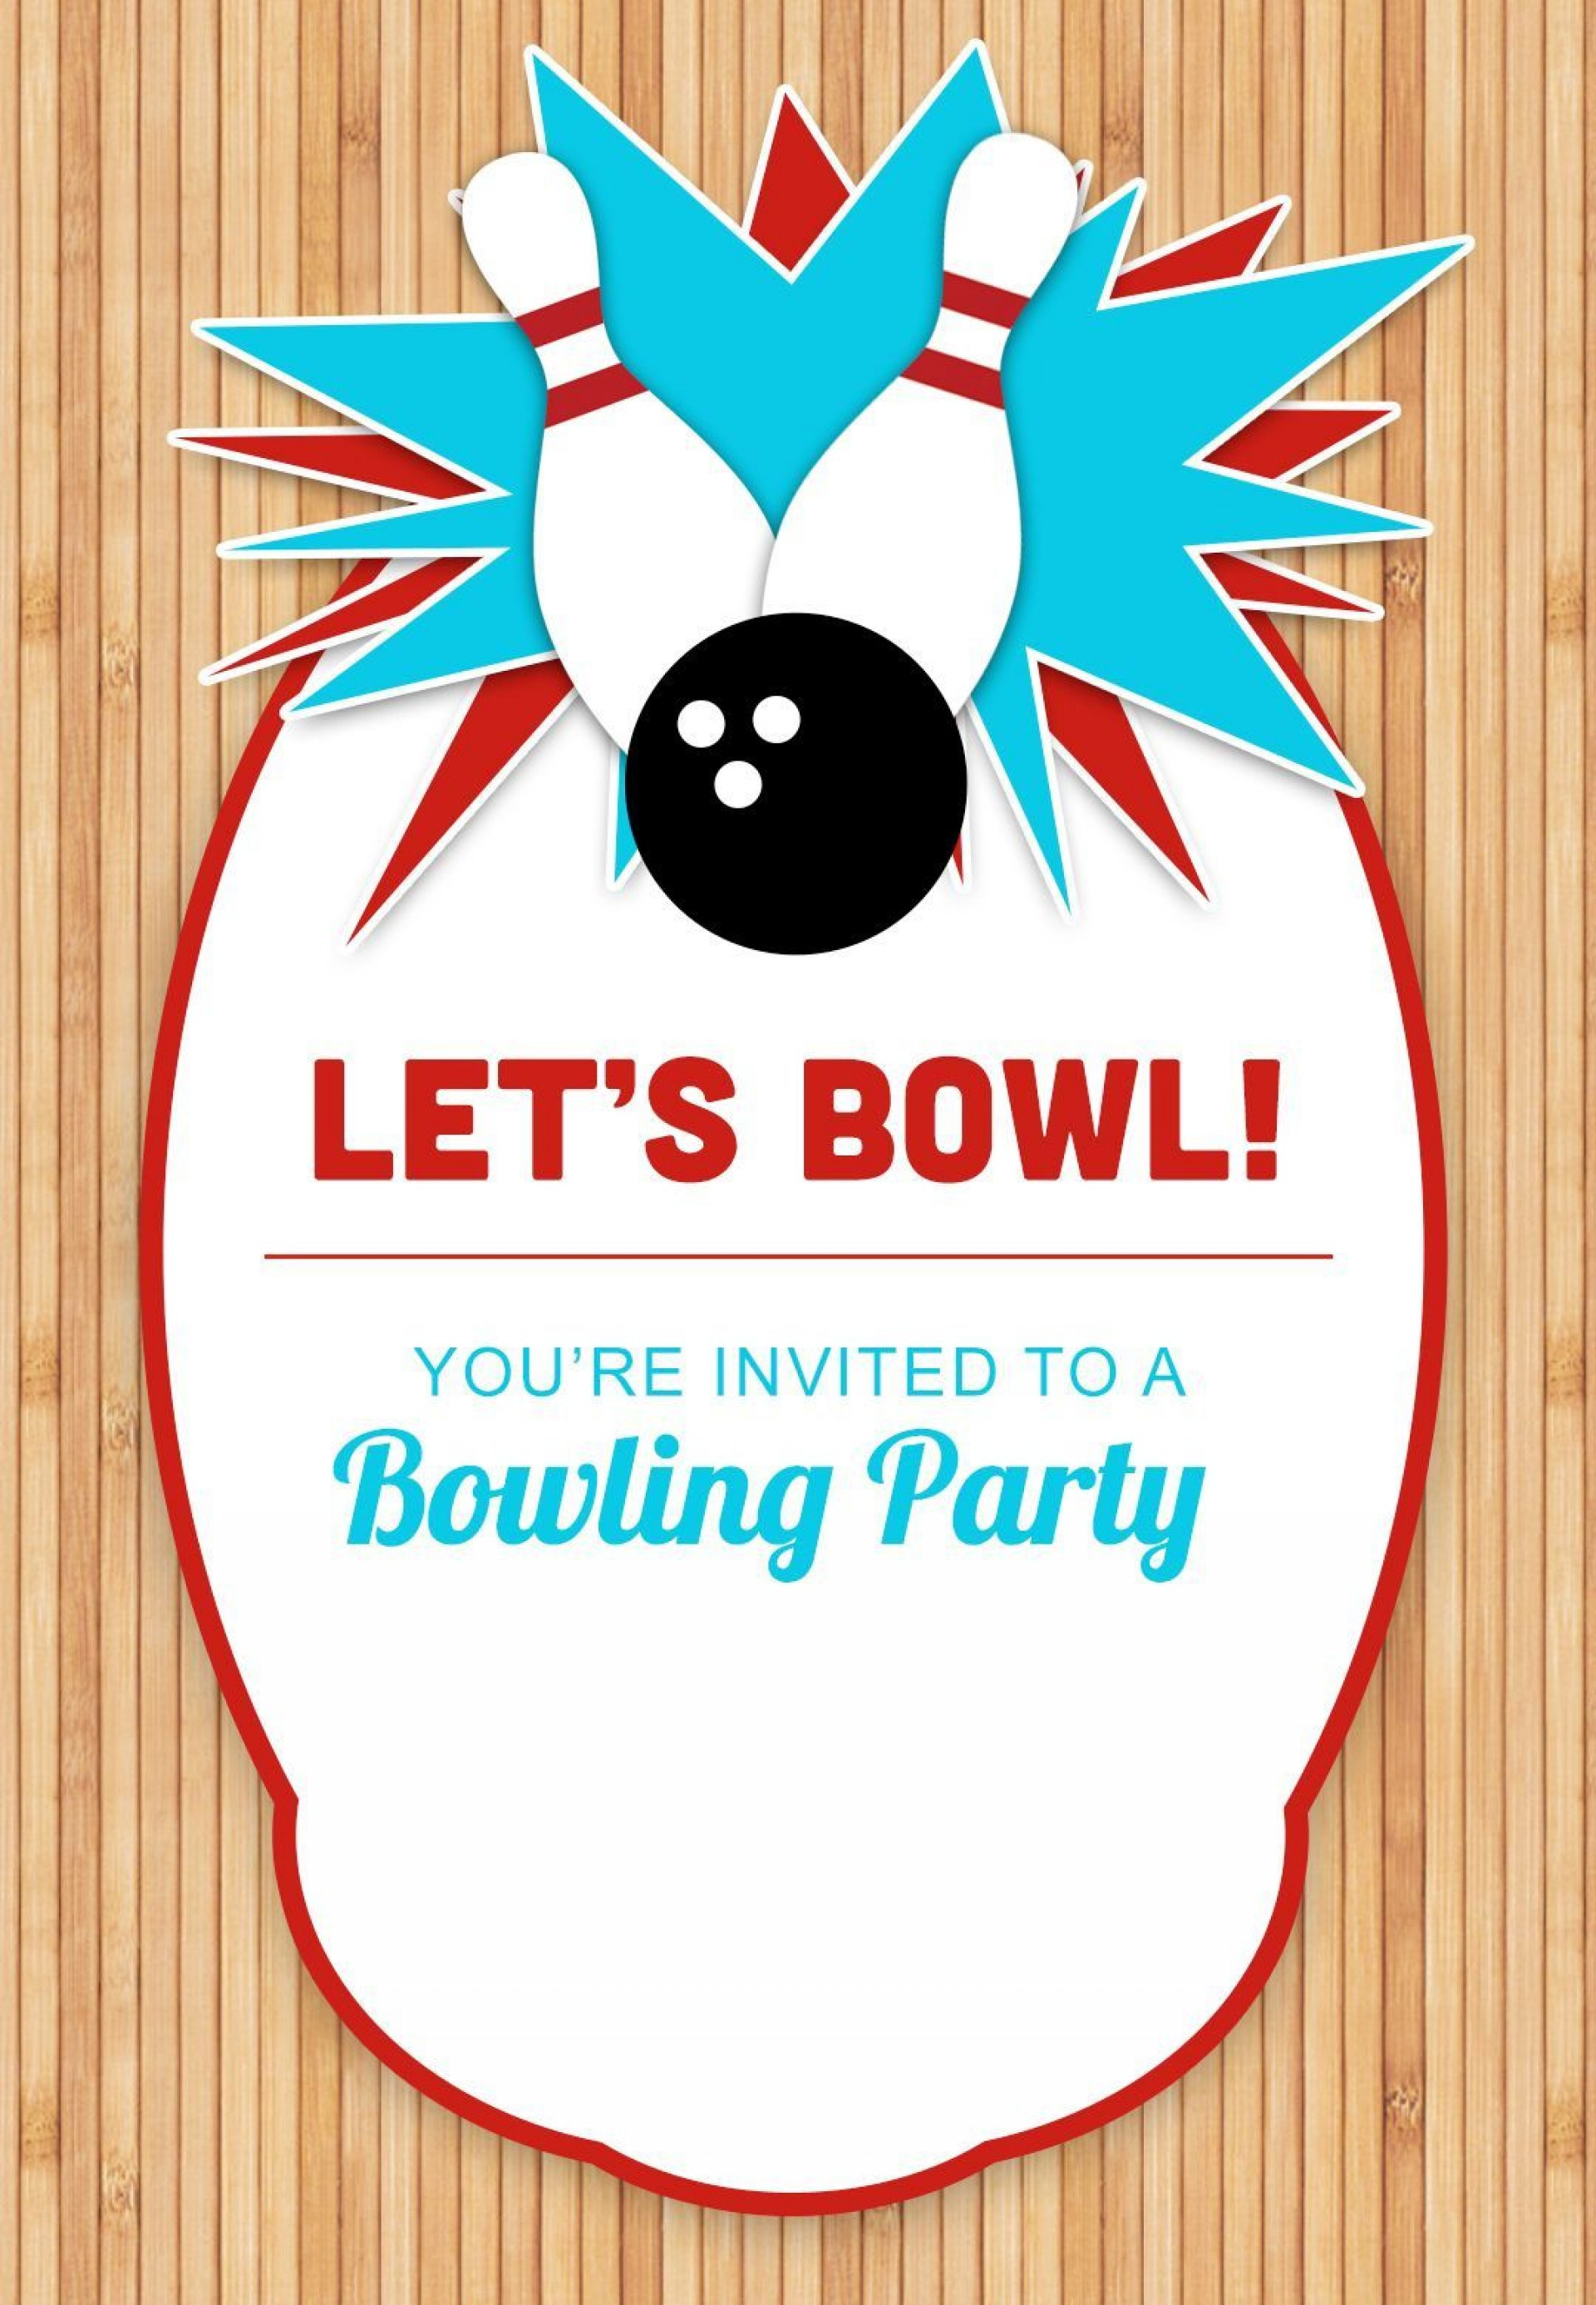 003 Marvelou Bowling Party Invite Printable Free Sample  Birthday Invitation Girl1920